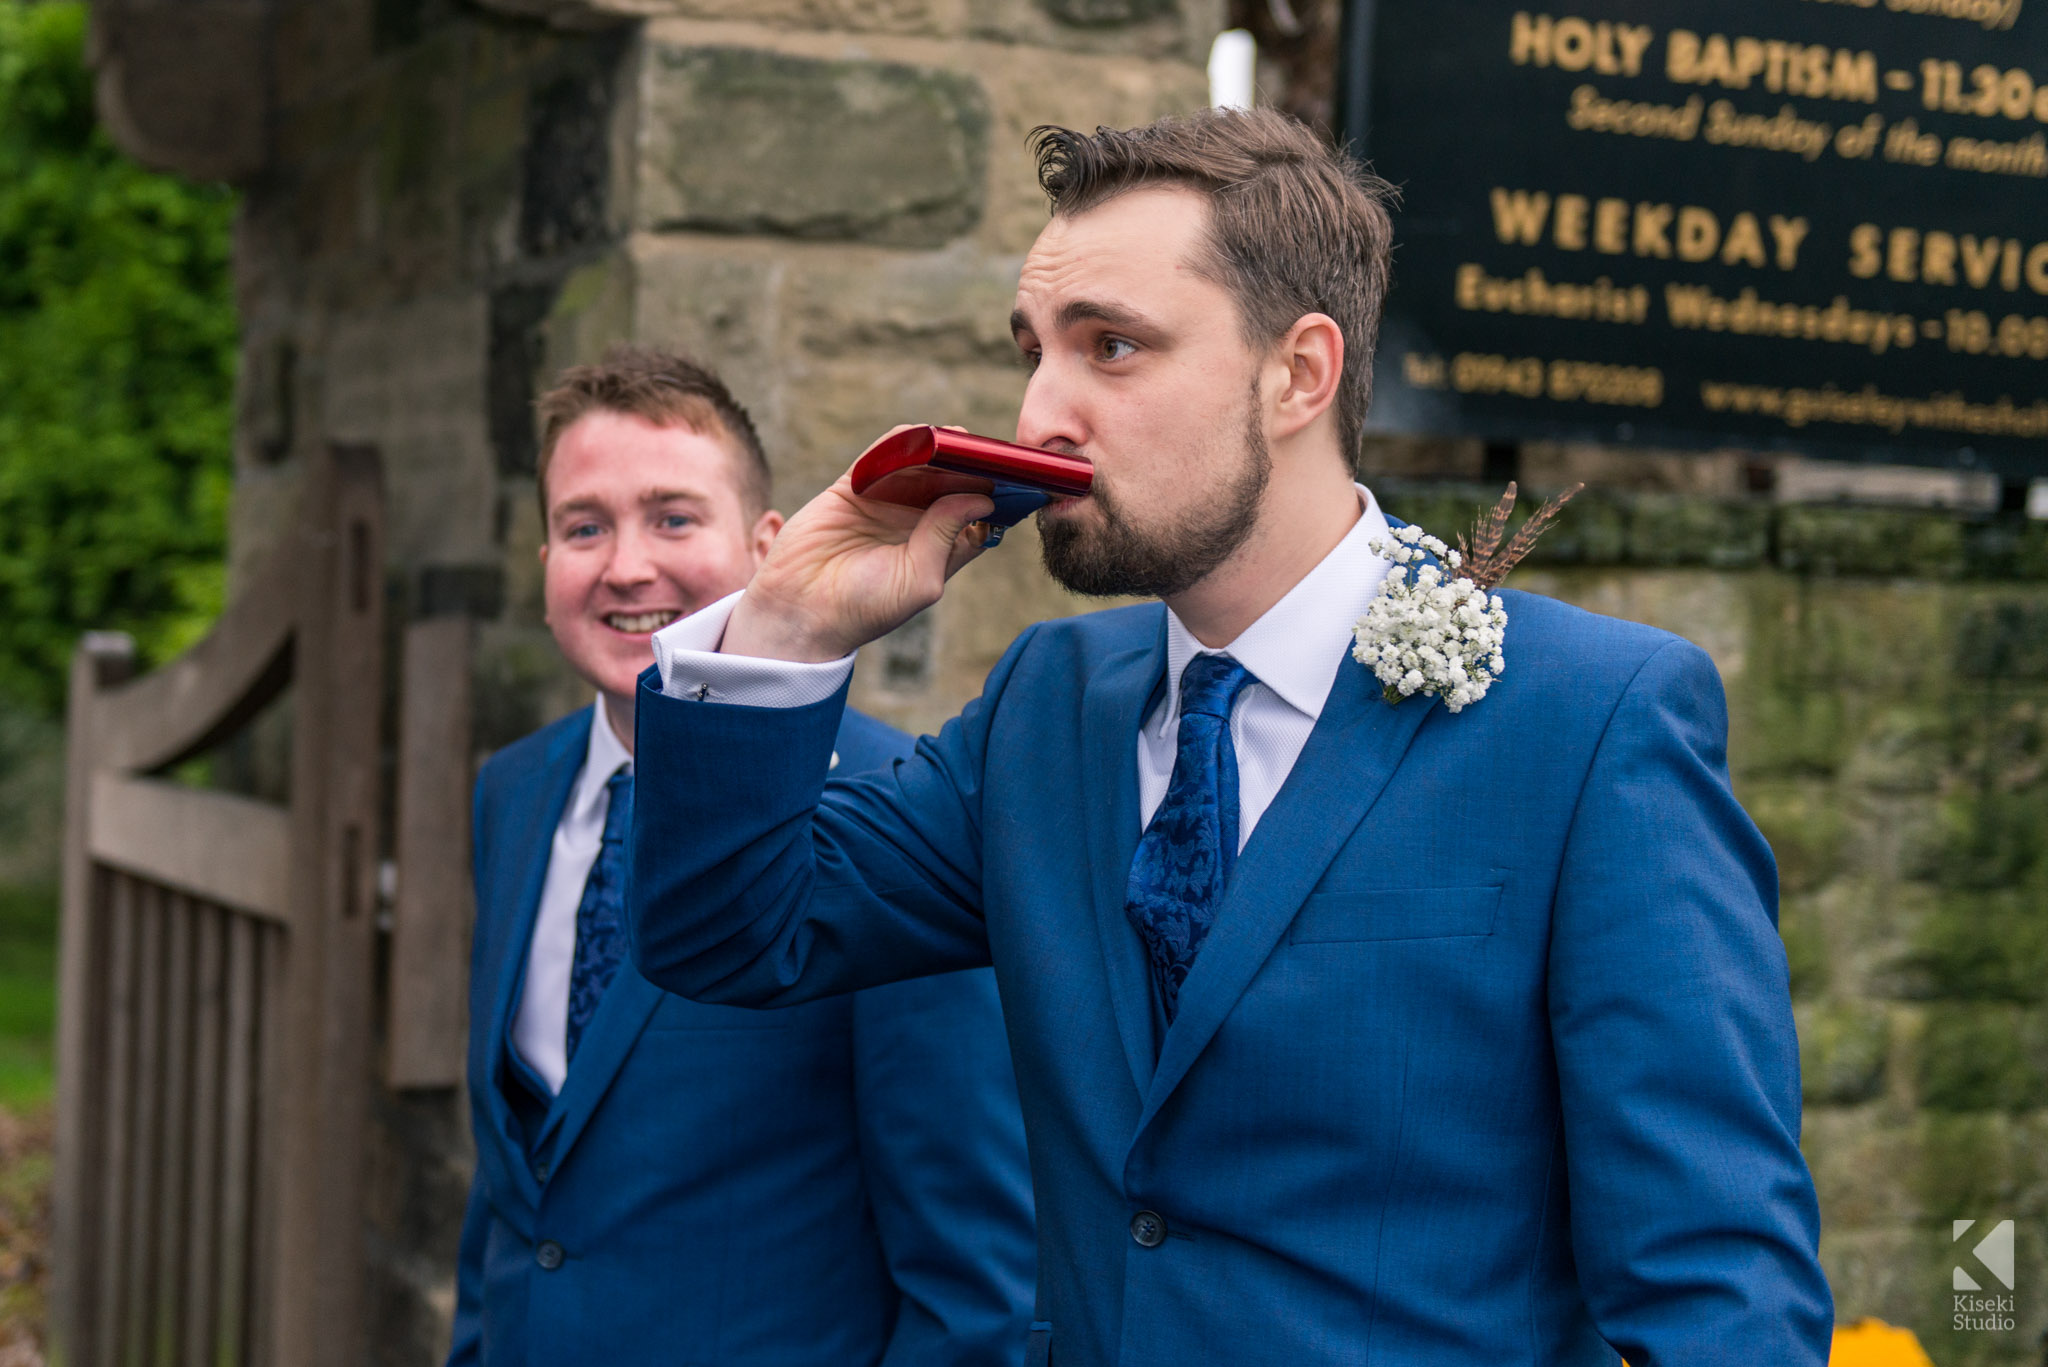 Groom having a cheeky pre-wedding drink